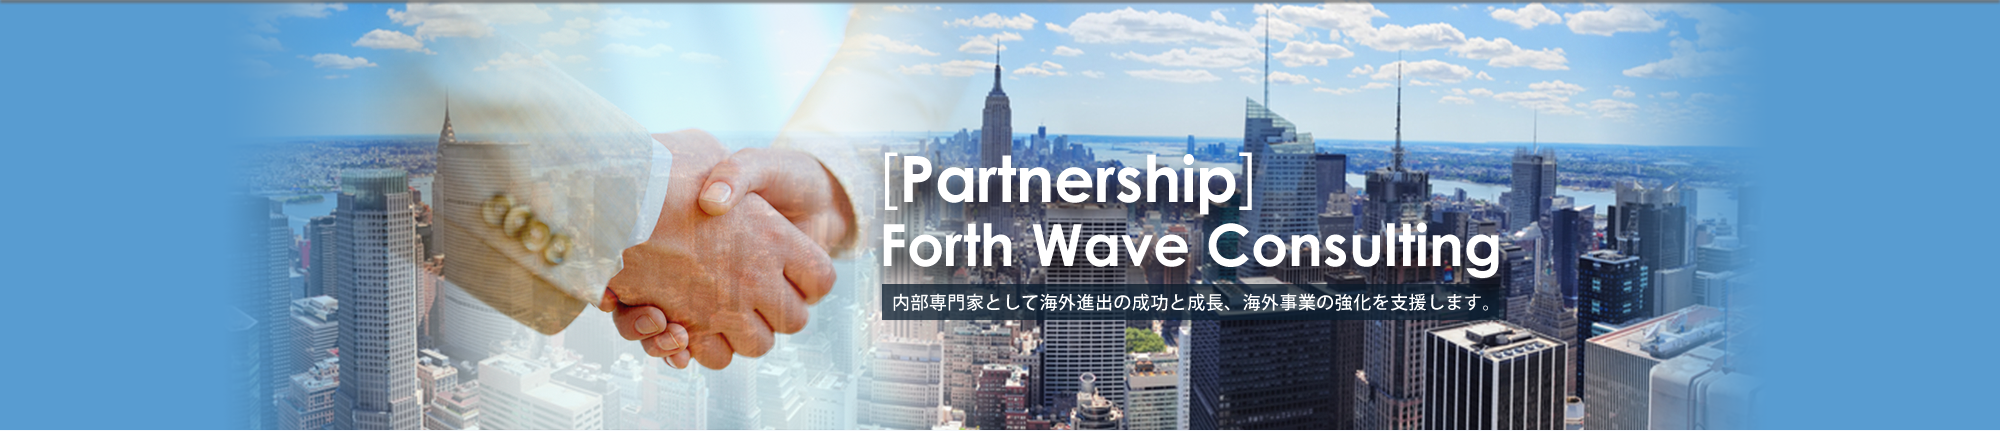 [Partnership] Forth Wave Consulting 内部専門家として海外進出の成功と成長、海外事業の強化を支援します。